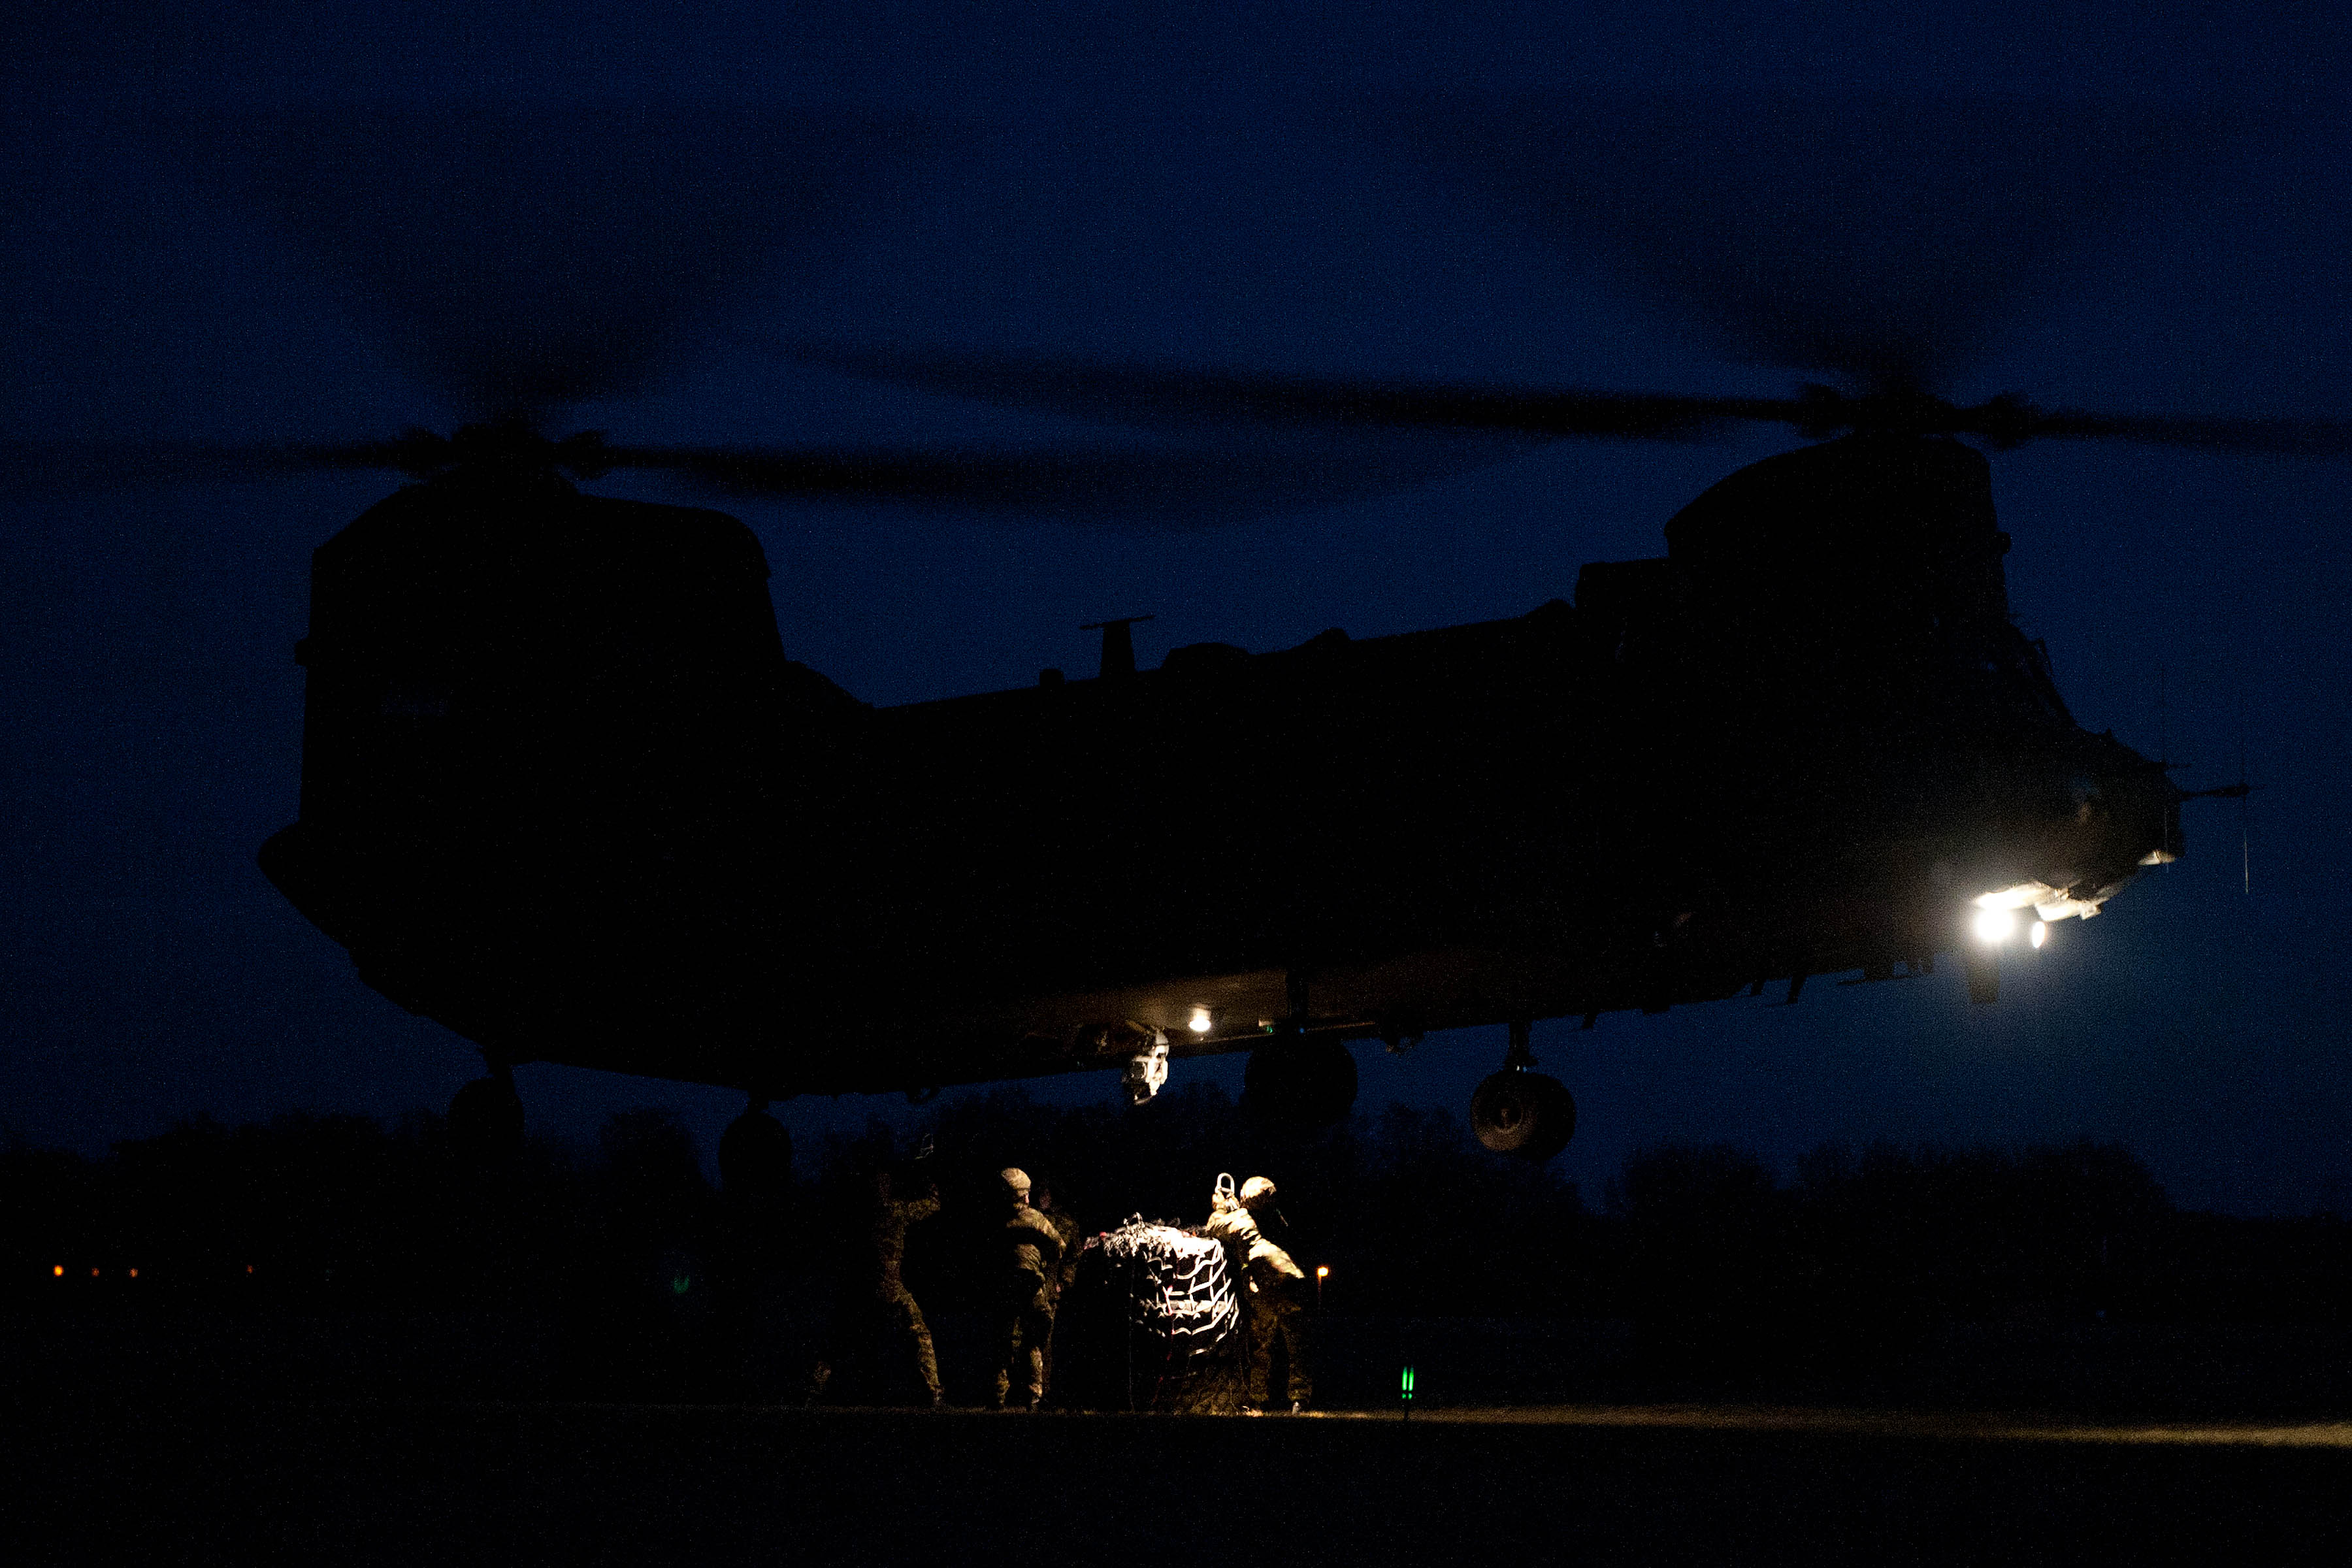 shnook helicopter with File Soldiers Attaching Cargo To Chinook Helicopter At Night Mod 45155094 on File Dutch Chinook furthermore 6819591023 as well File Sikorsky CH 54A Tarhe  S 64A   USA   Army AN0803366 also Sikorsky Mh 53e Sea Dragon as well OD AC028.